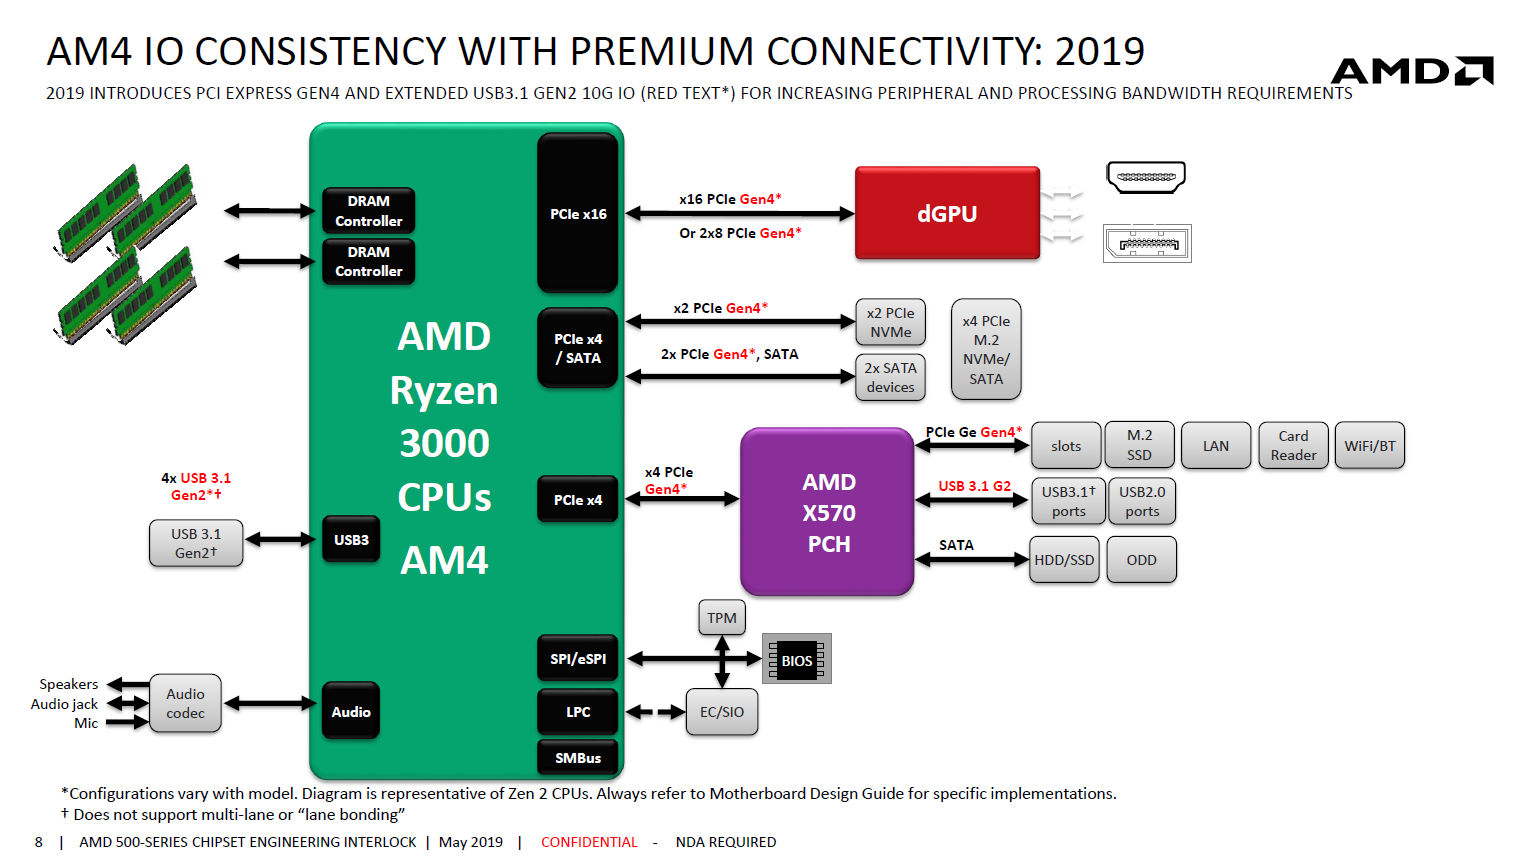 AMD-X570-Chipset-Block-Diagram.jpg